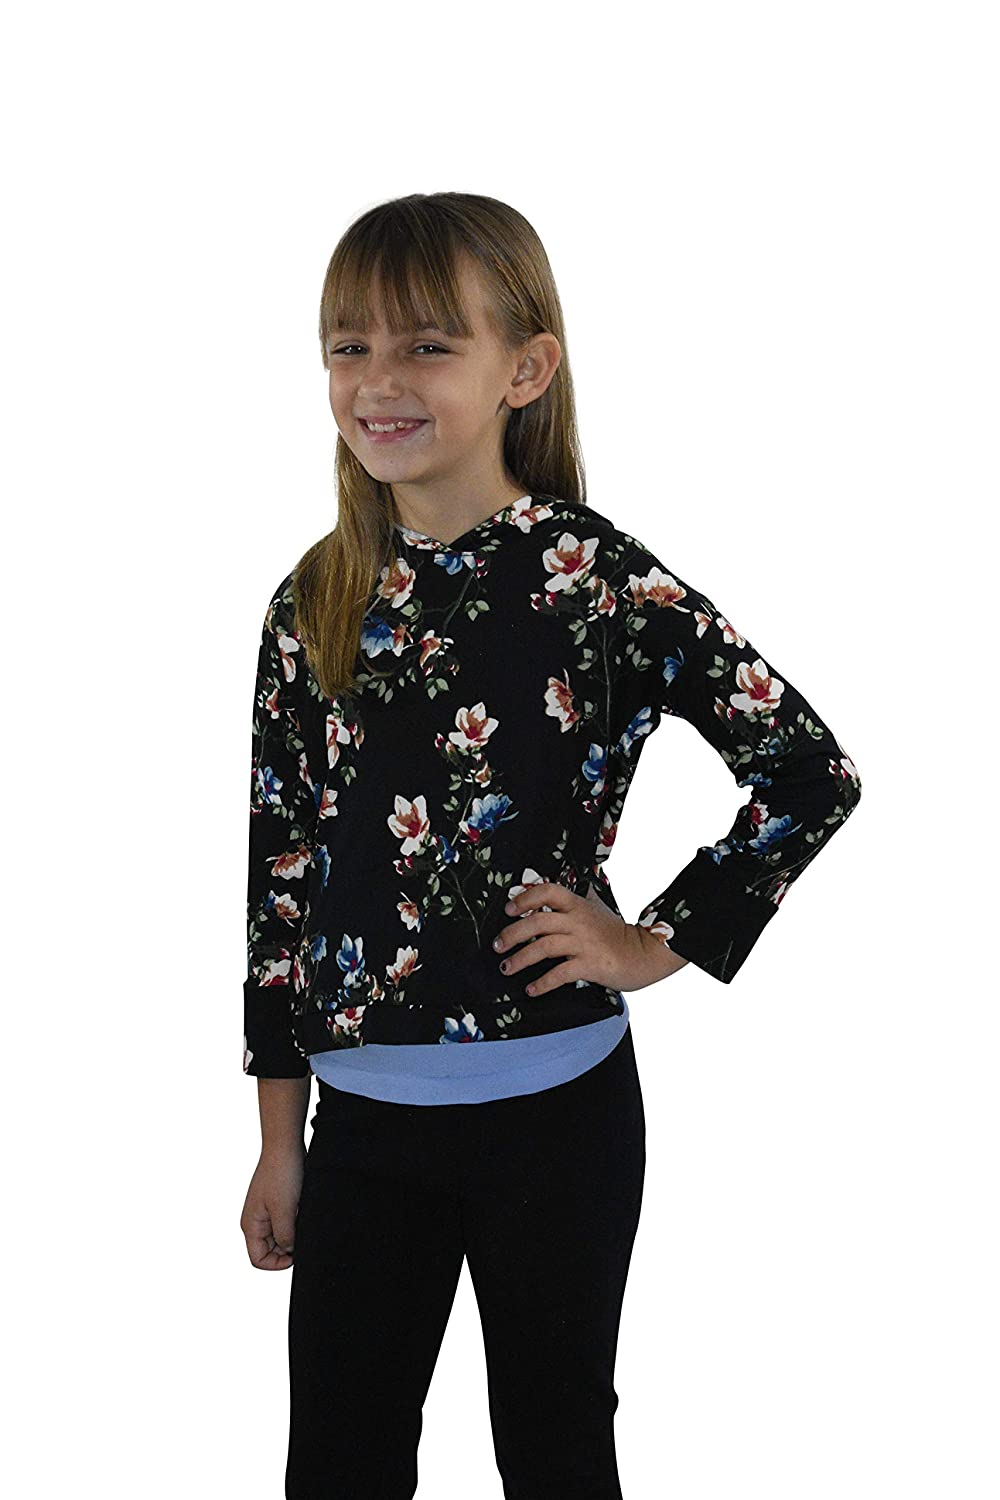 Pink and Black with Zipper Girls Cute Long Sleeve Made in USA Flexible Soft Fabric Hoodie for Kids Comfortable Warm Cozy